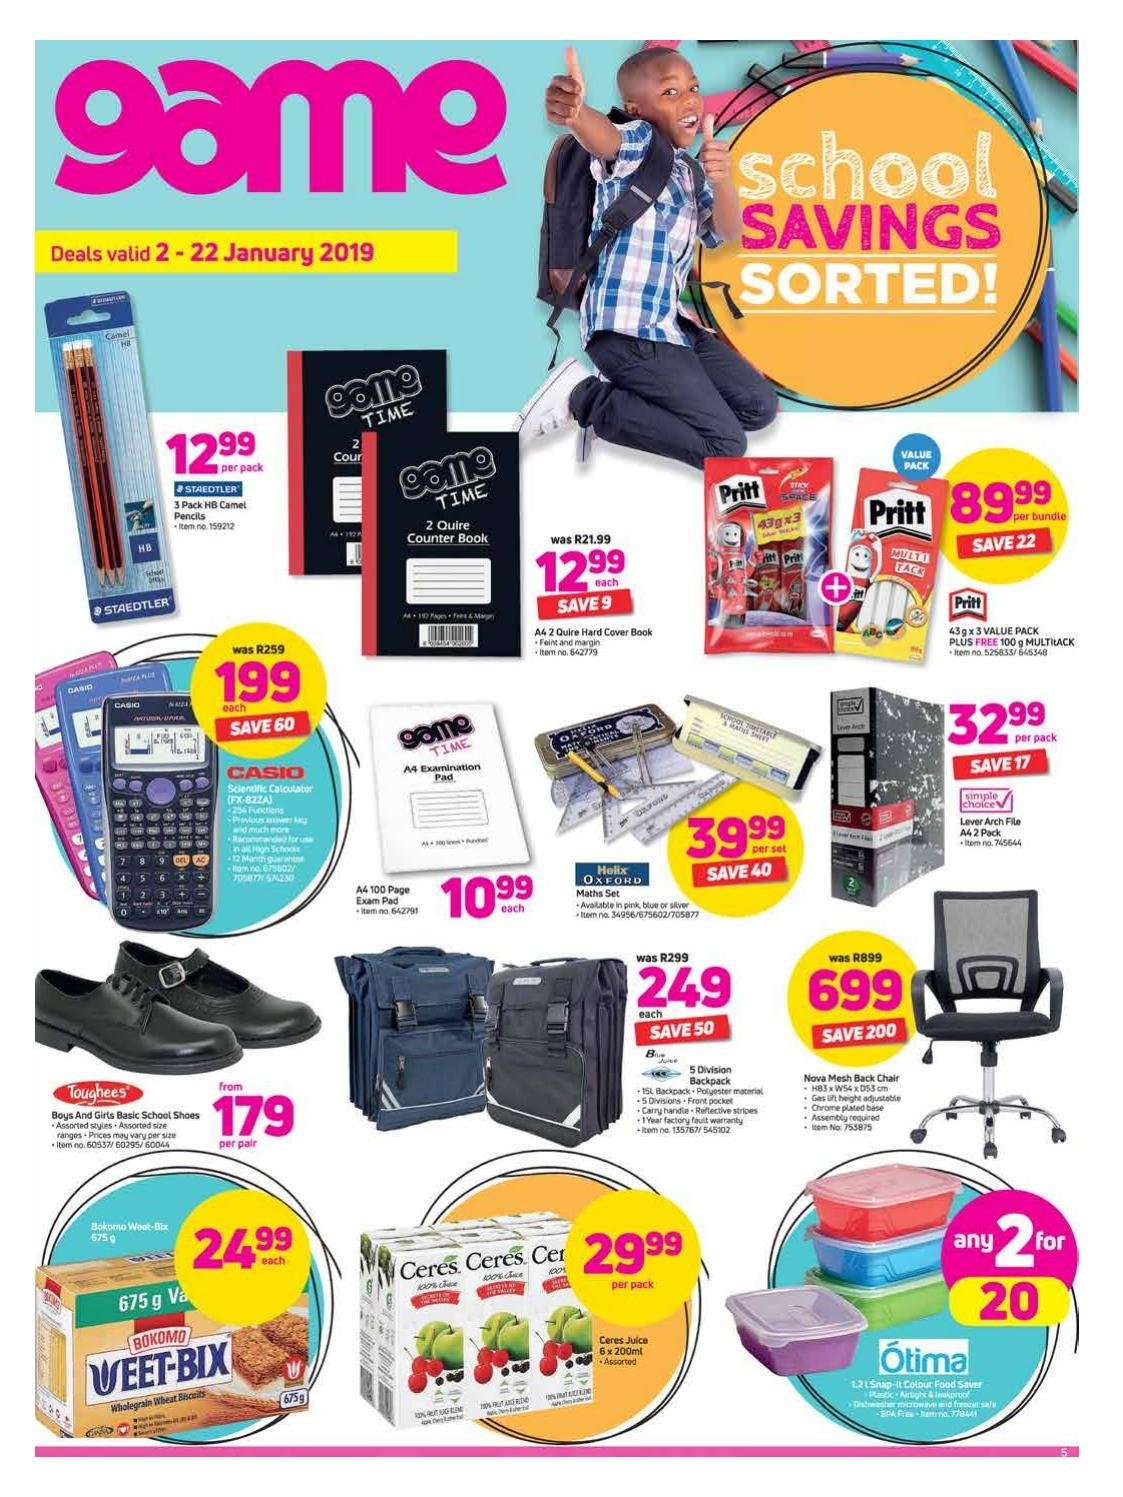 Game special - 01.02.2019 - 01.22.2019 - Sales products - backpack, casio, cover, shoes, chair, pad. Page 1.